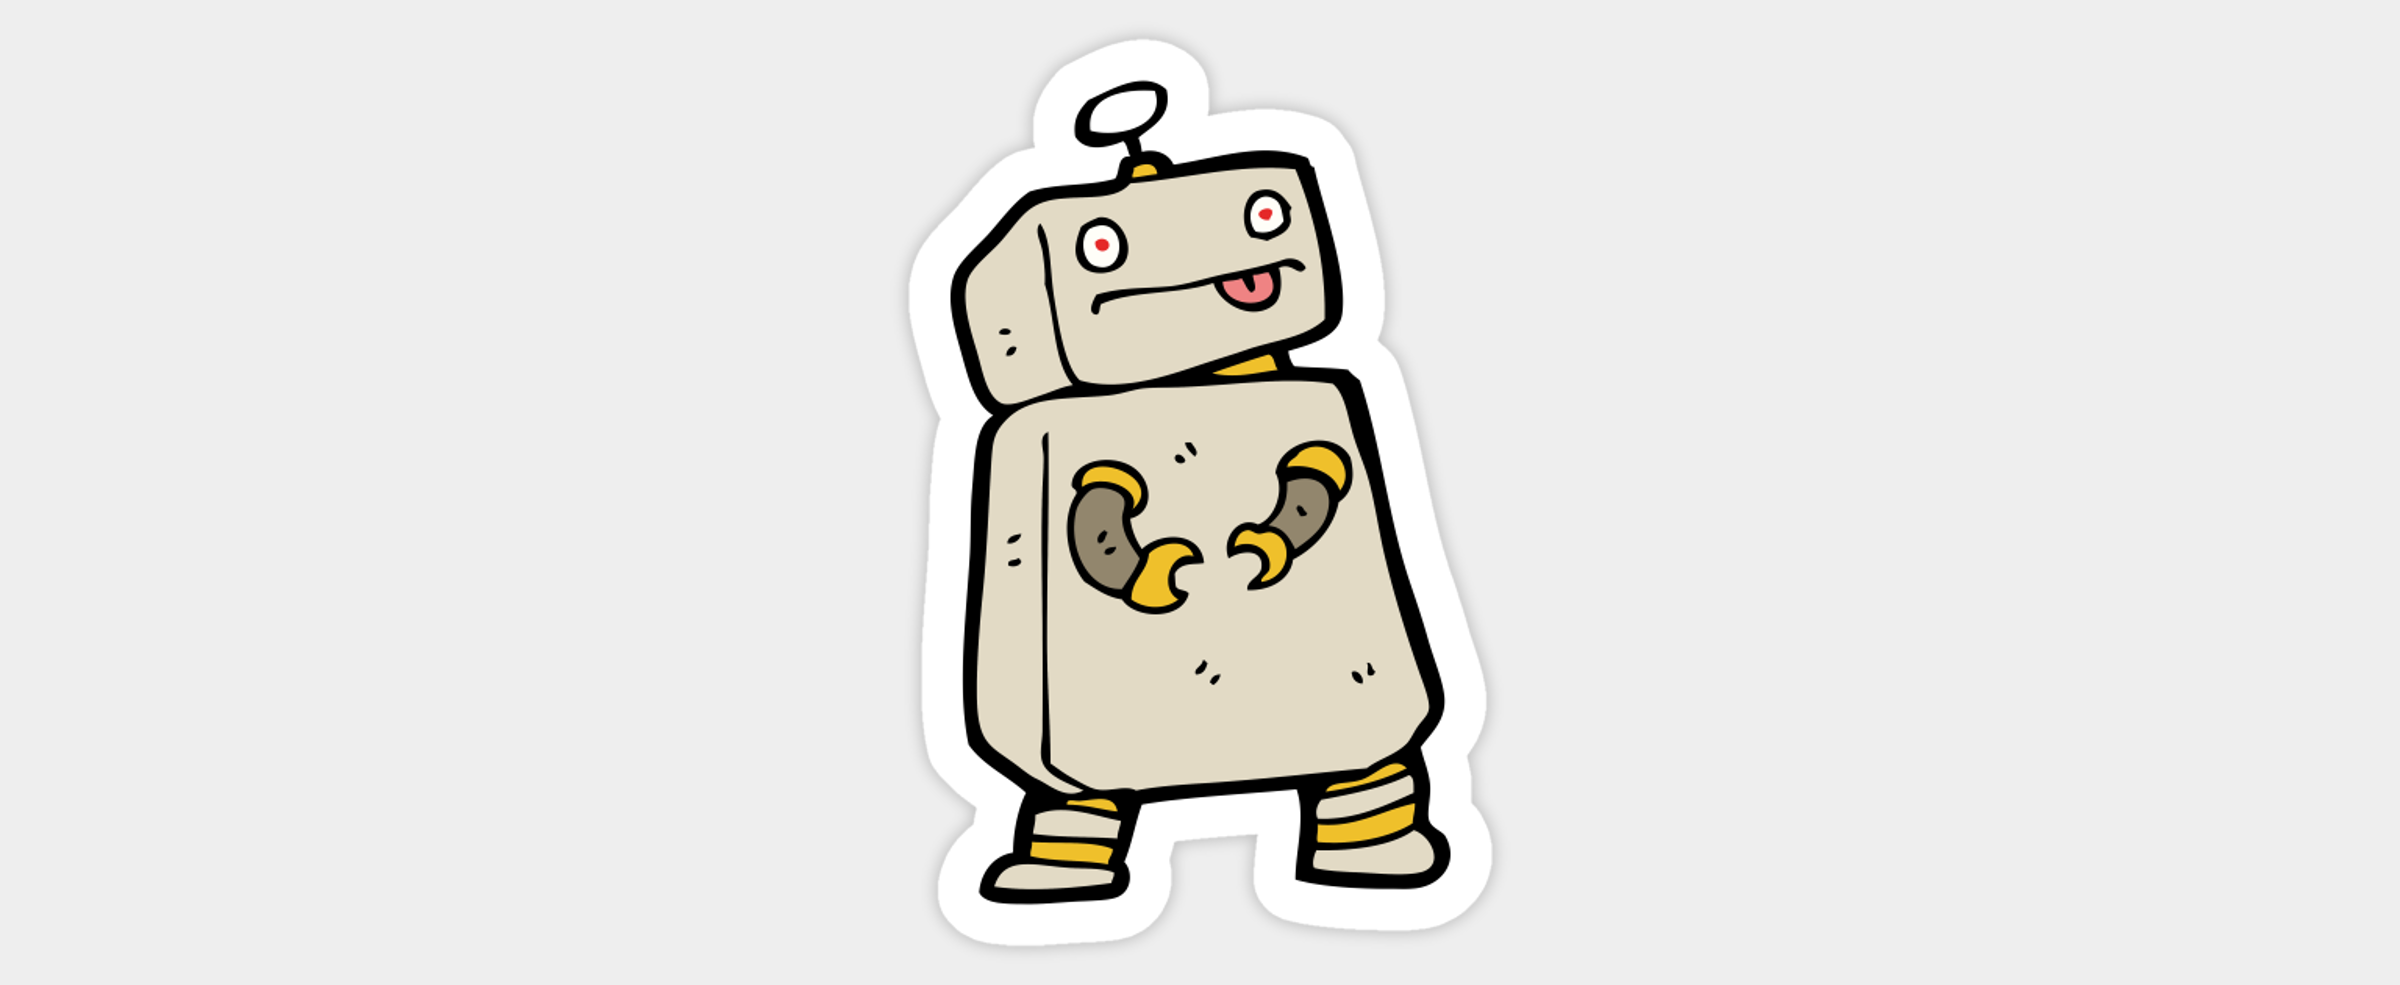 Cartoon of a confused robot